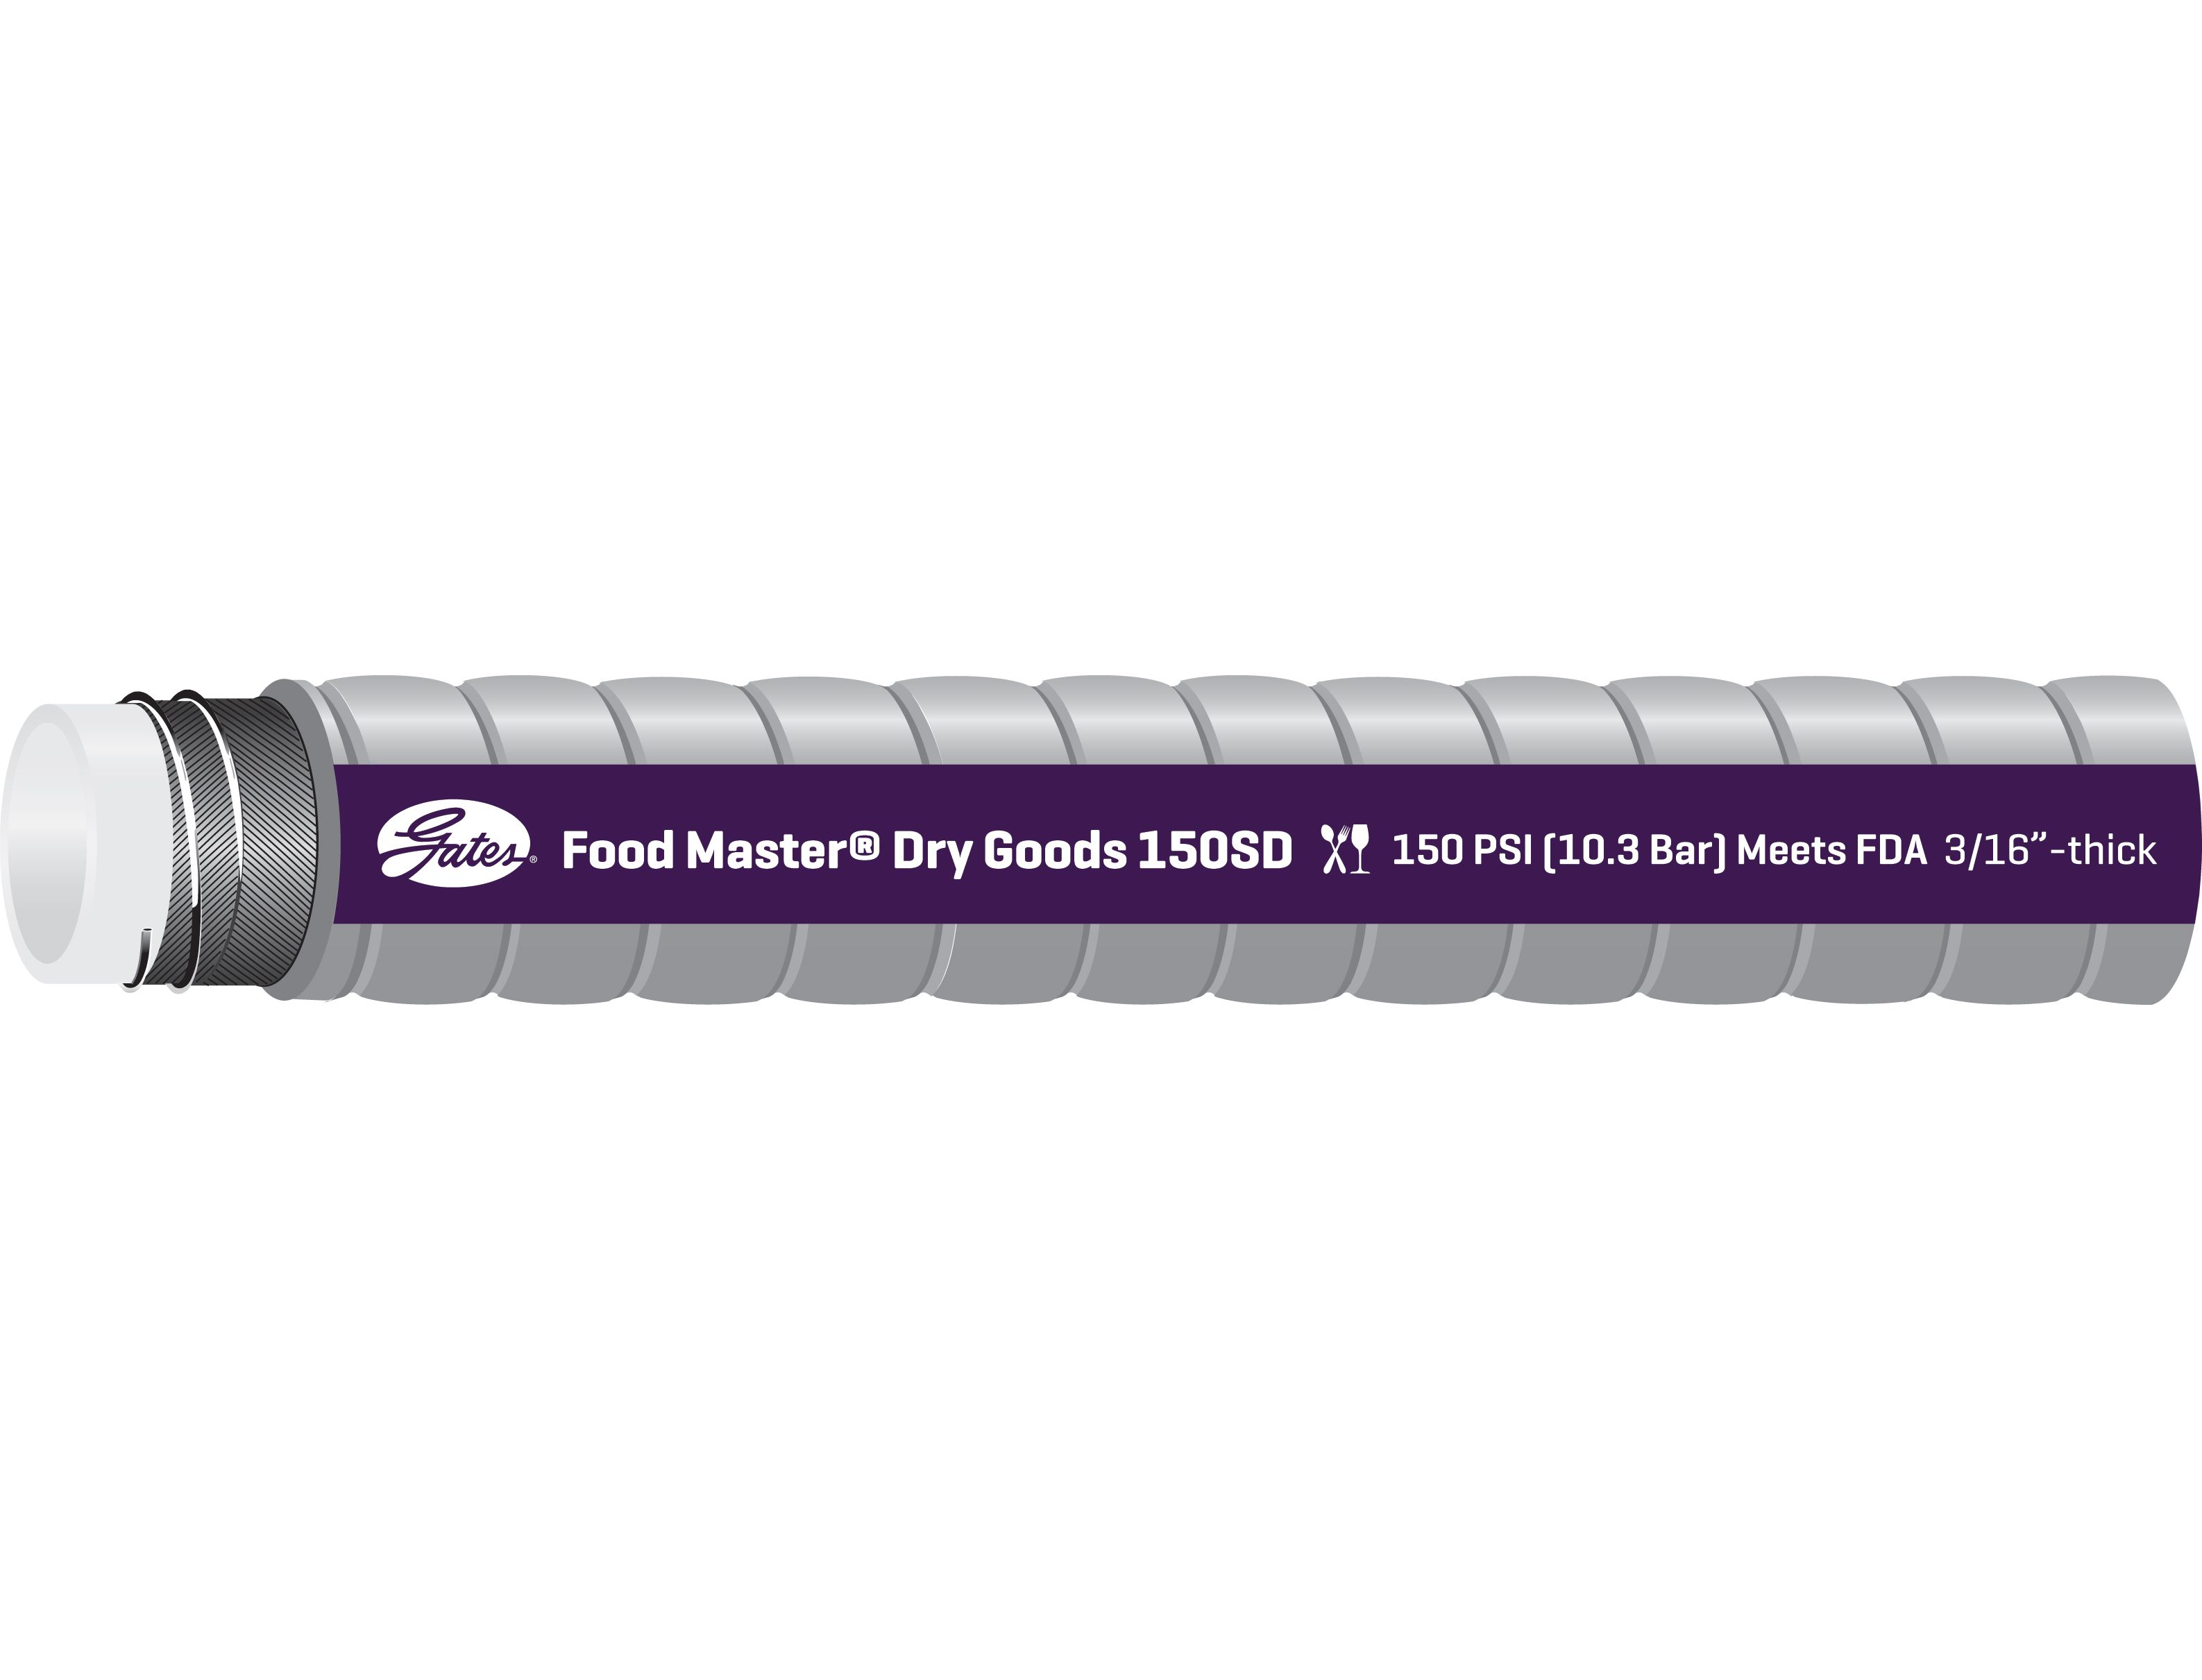 Food Master Dry Goods (25-40)D Transfer Hose